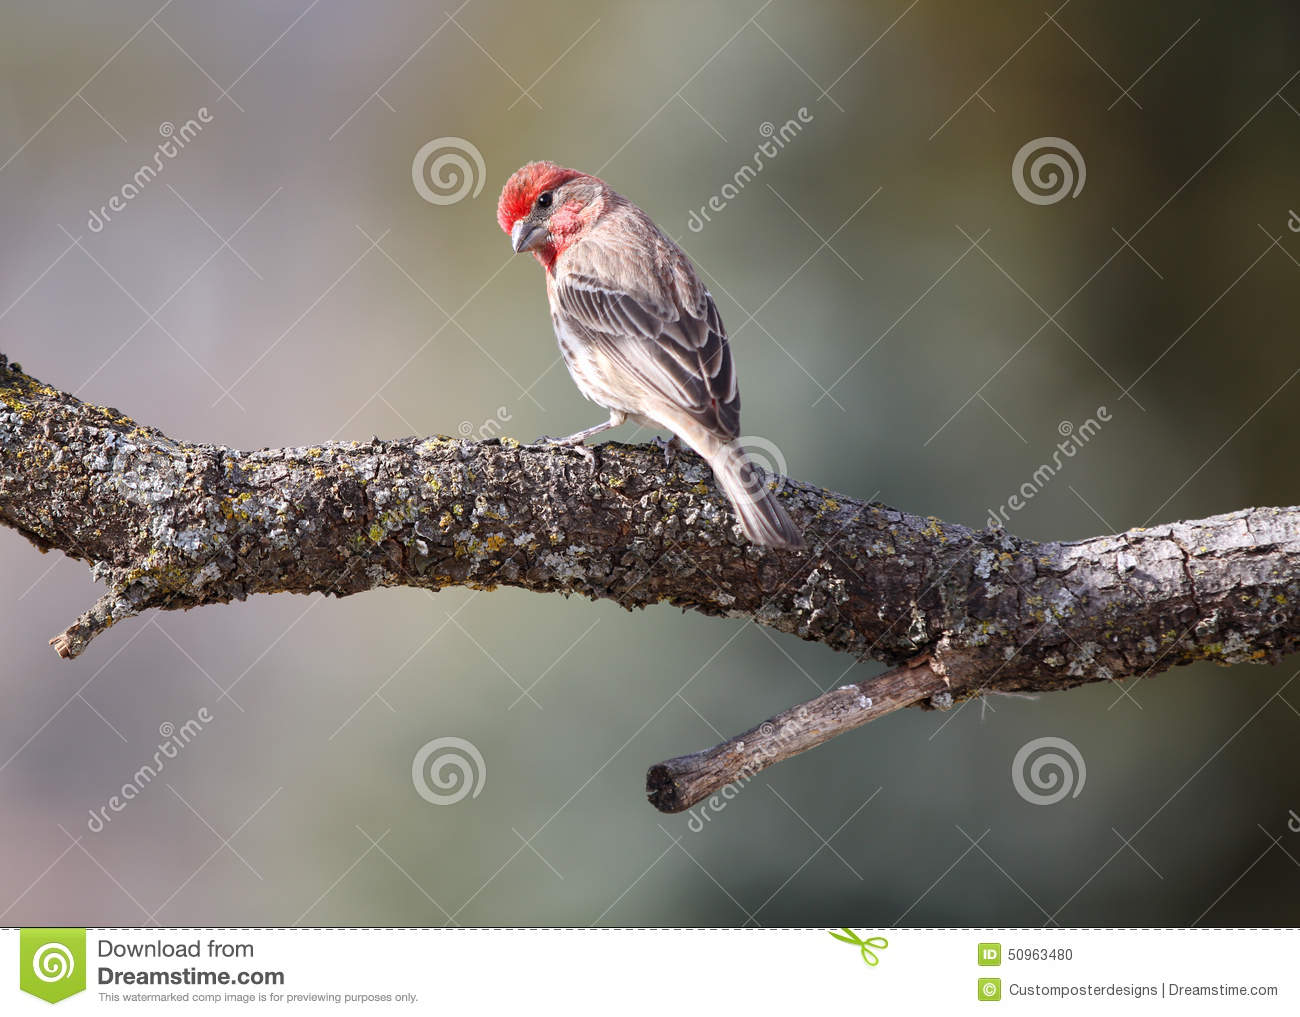 Download A Male House Finch In The Wild. Stock Photo - Image of finch, birds: 50963480